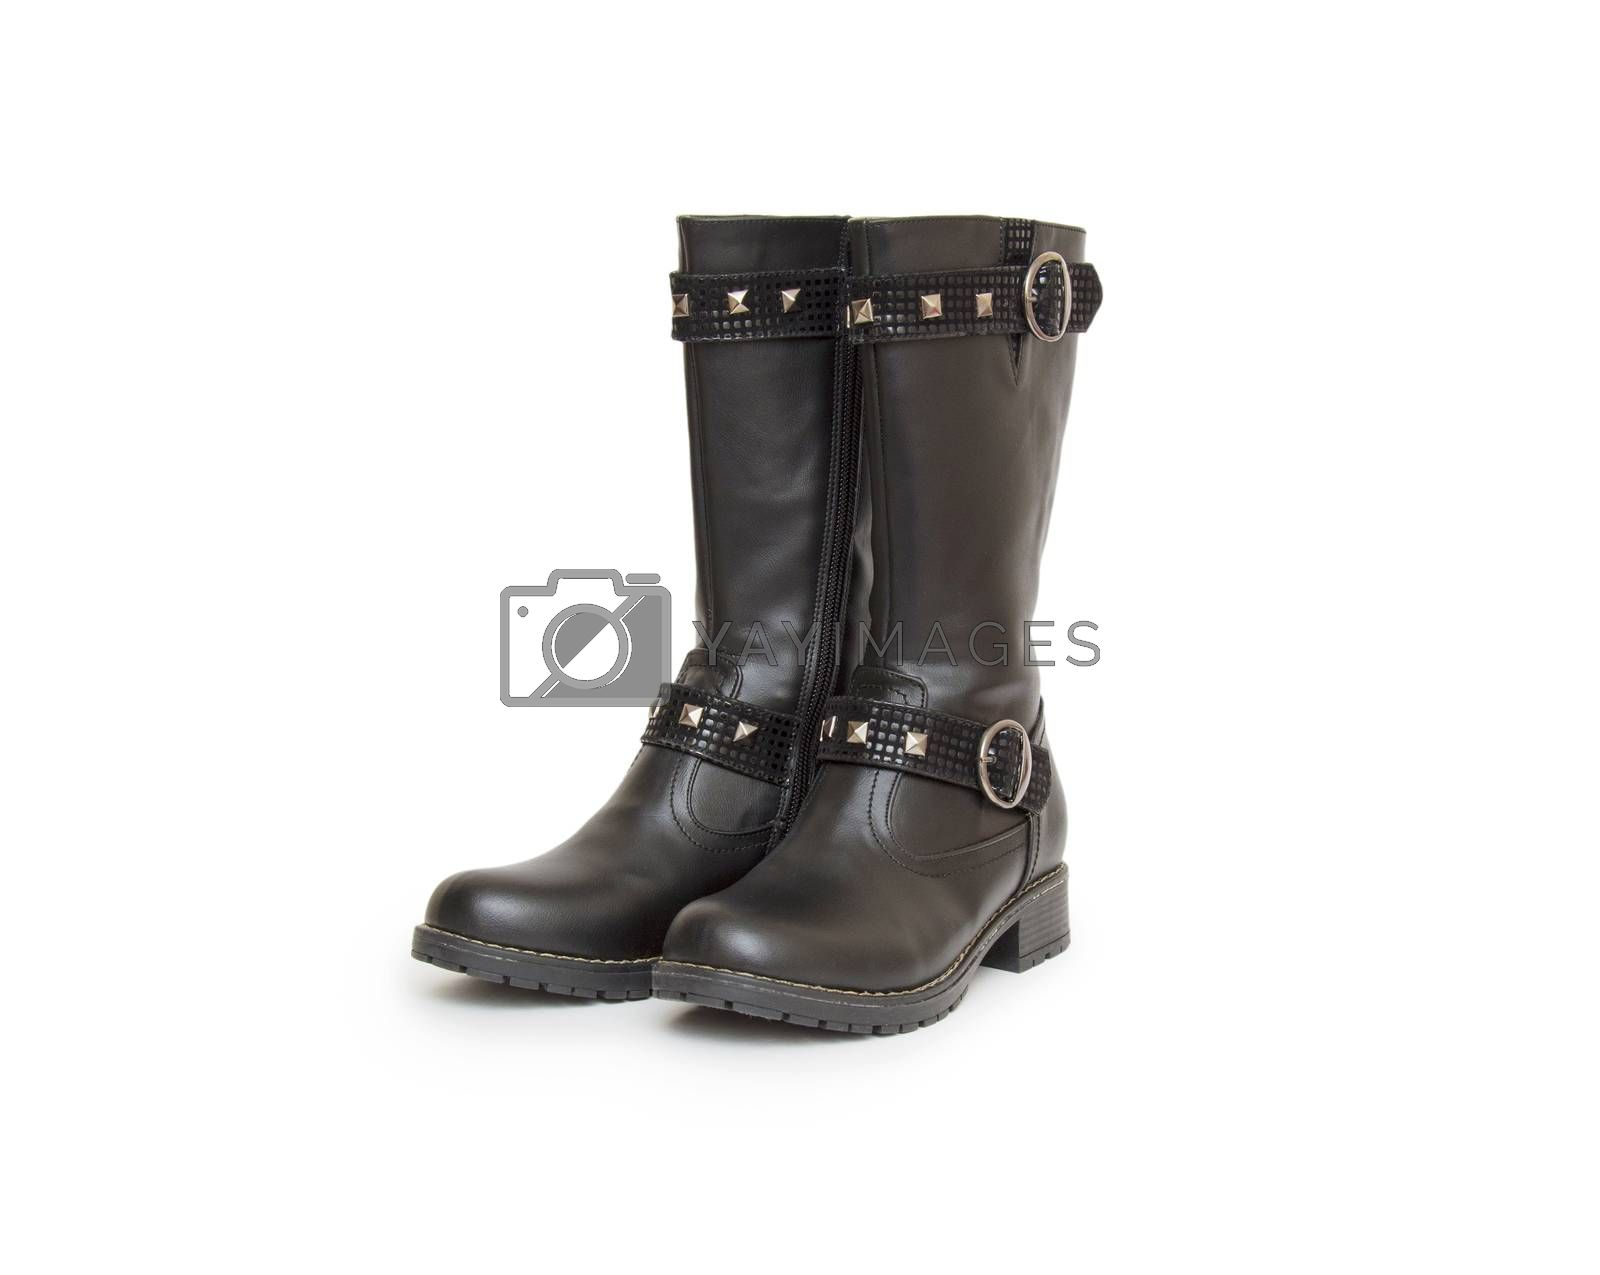 Royalty free image of Stylish boots isolated on white by cocoo